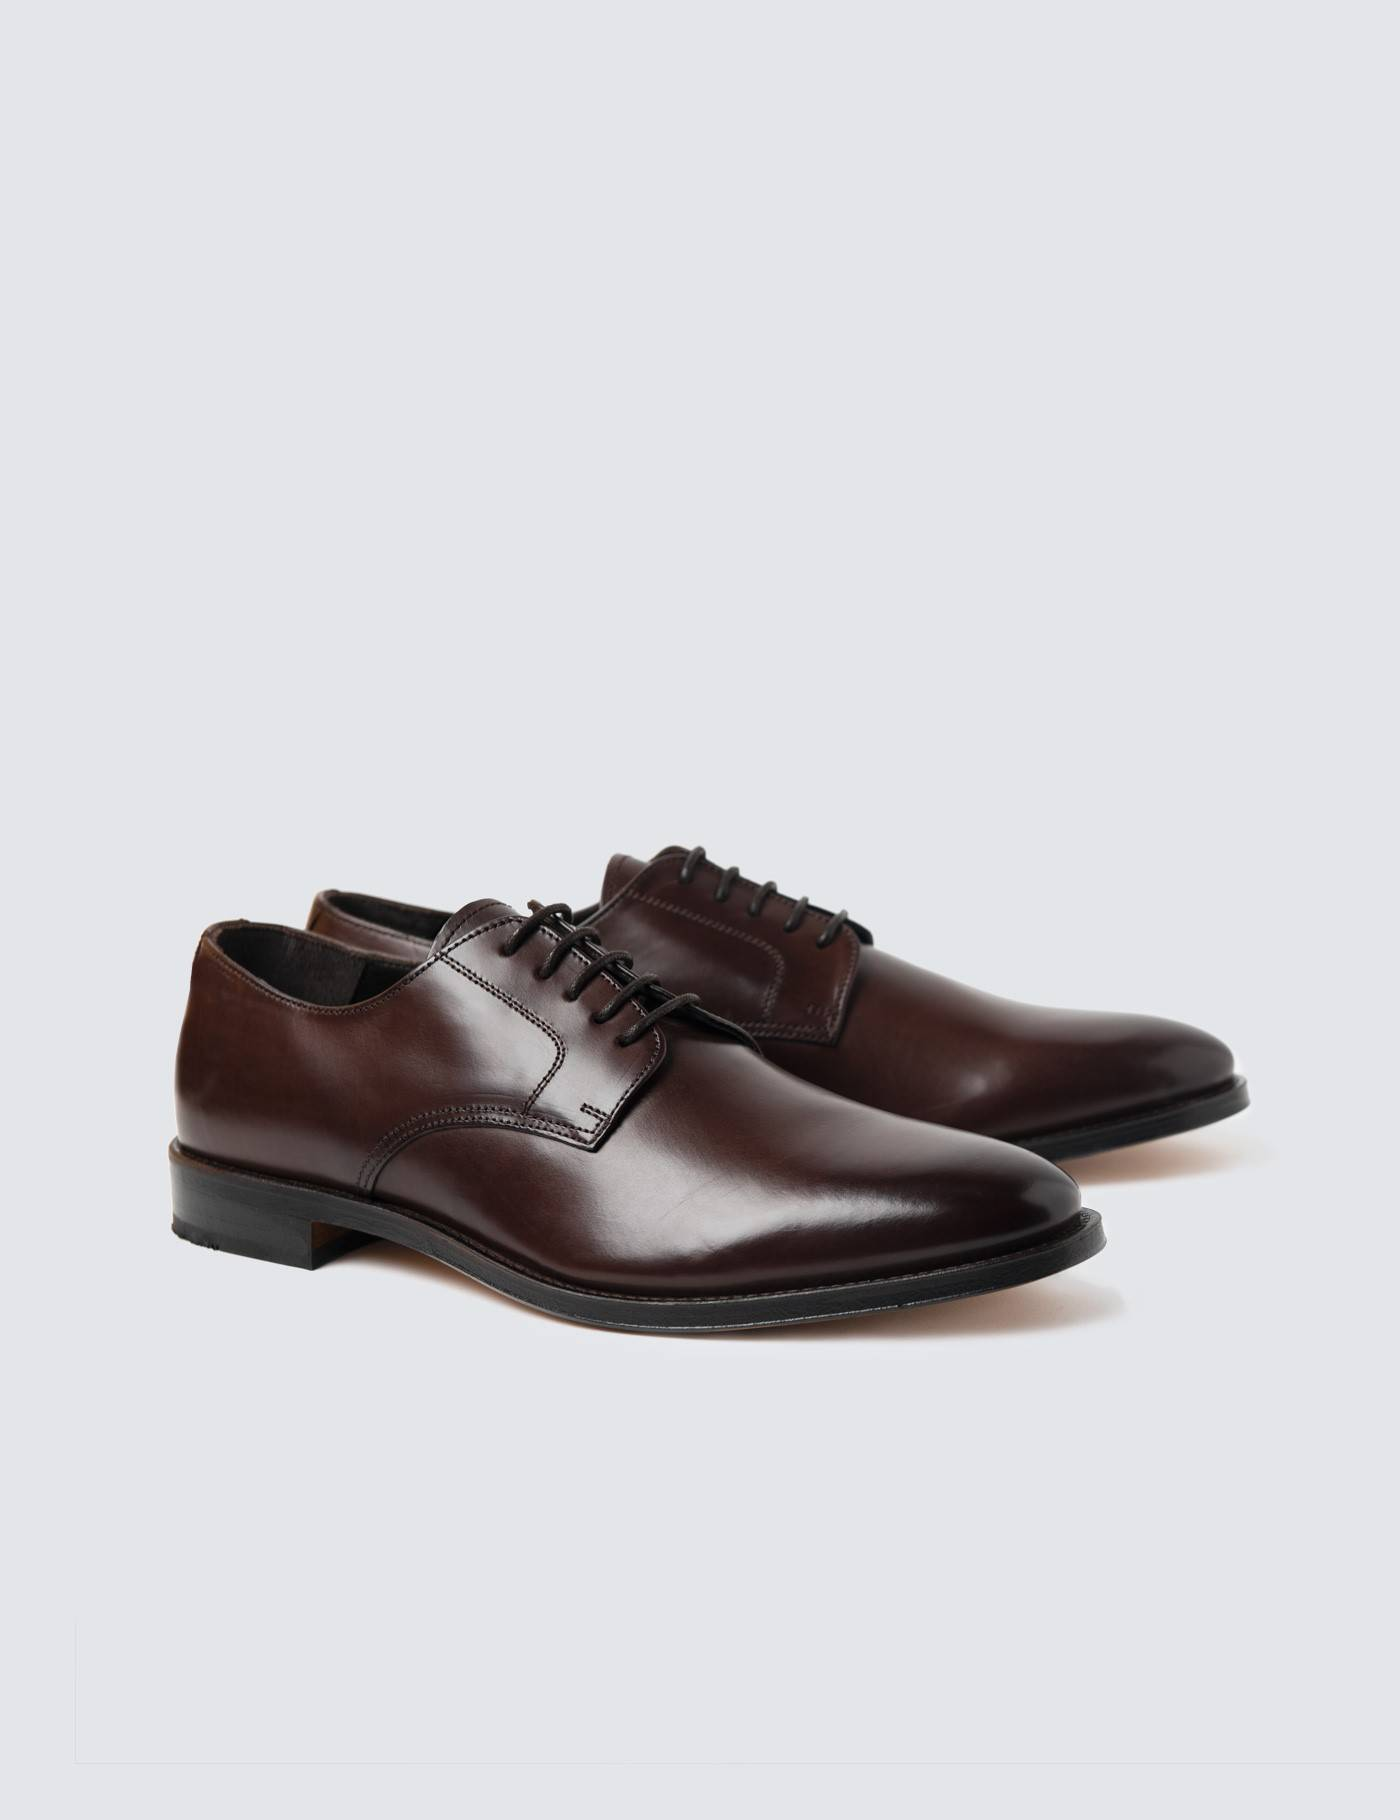 Hawes & Curtis Men's Leather Plain Derby Shoes in Brown Size 9.5